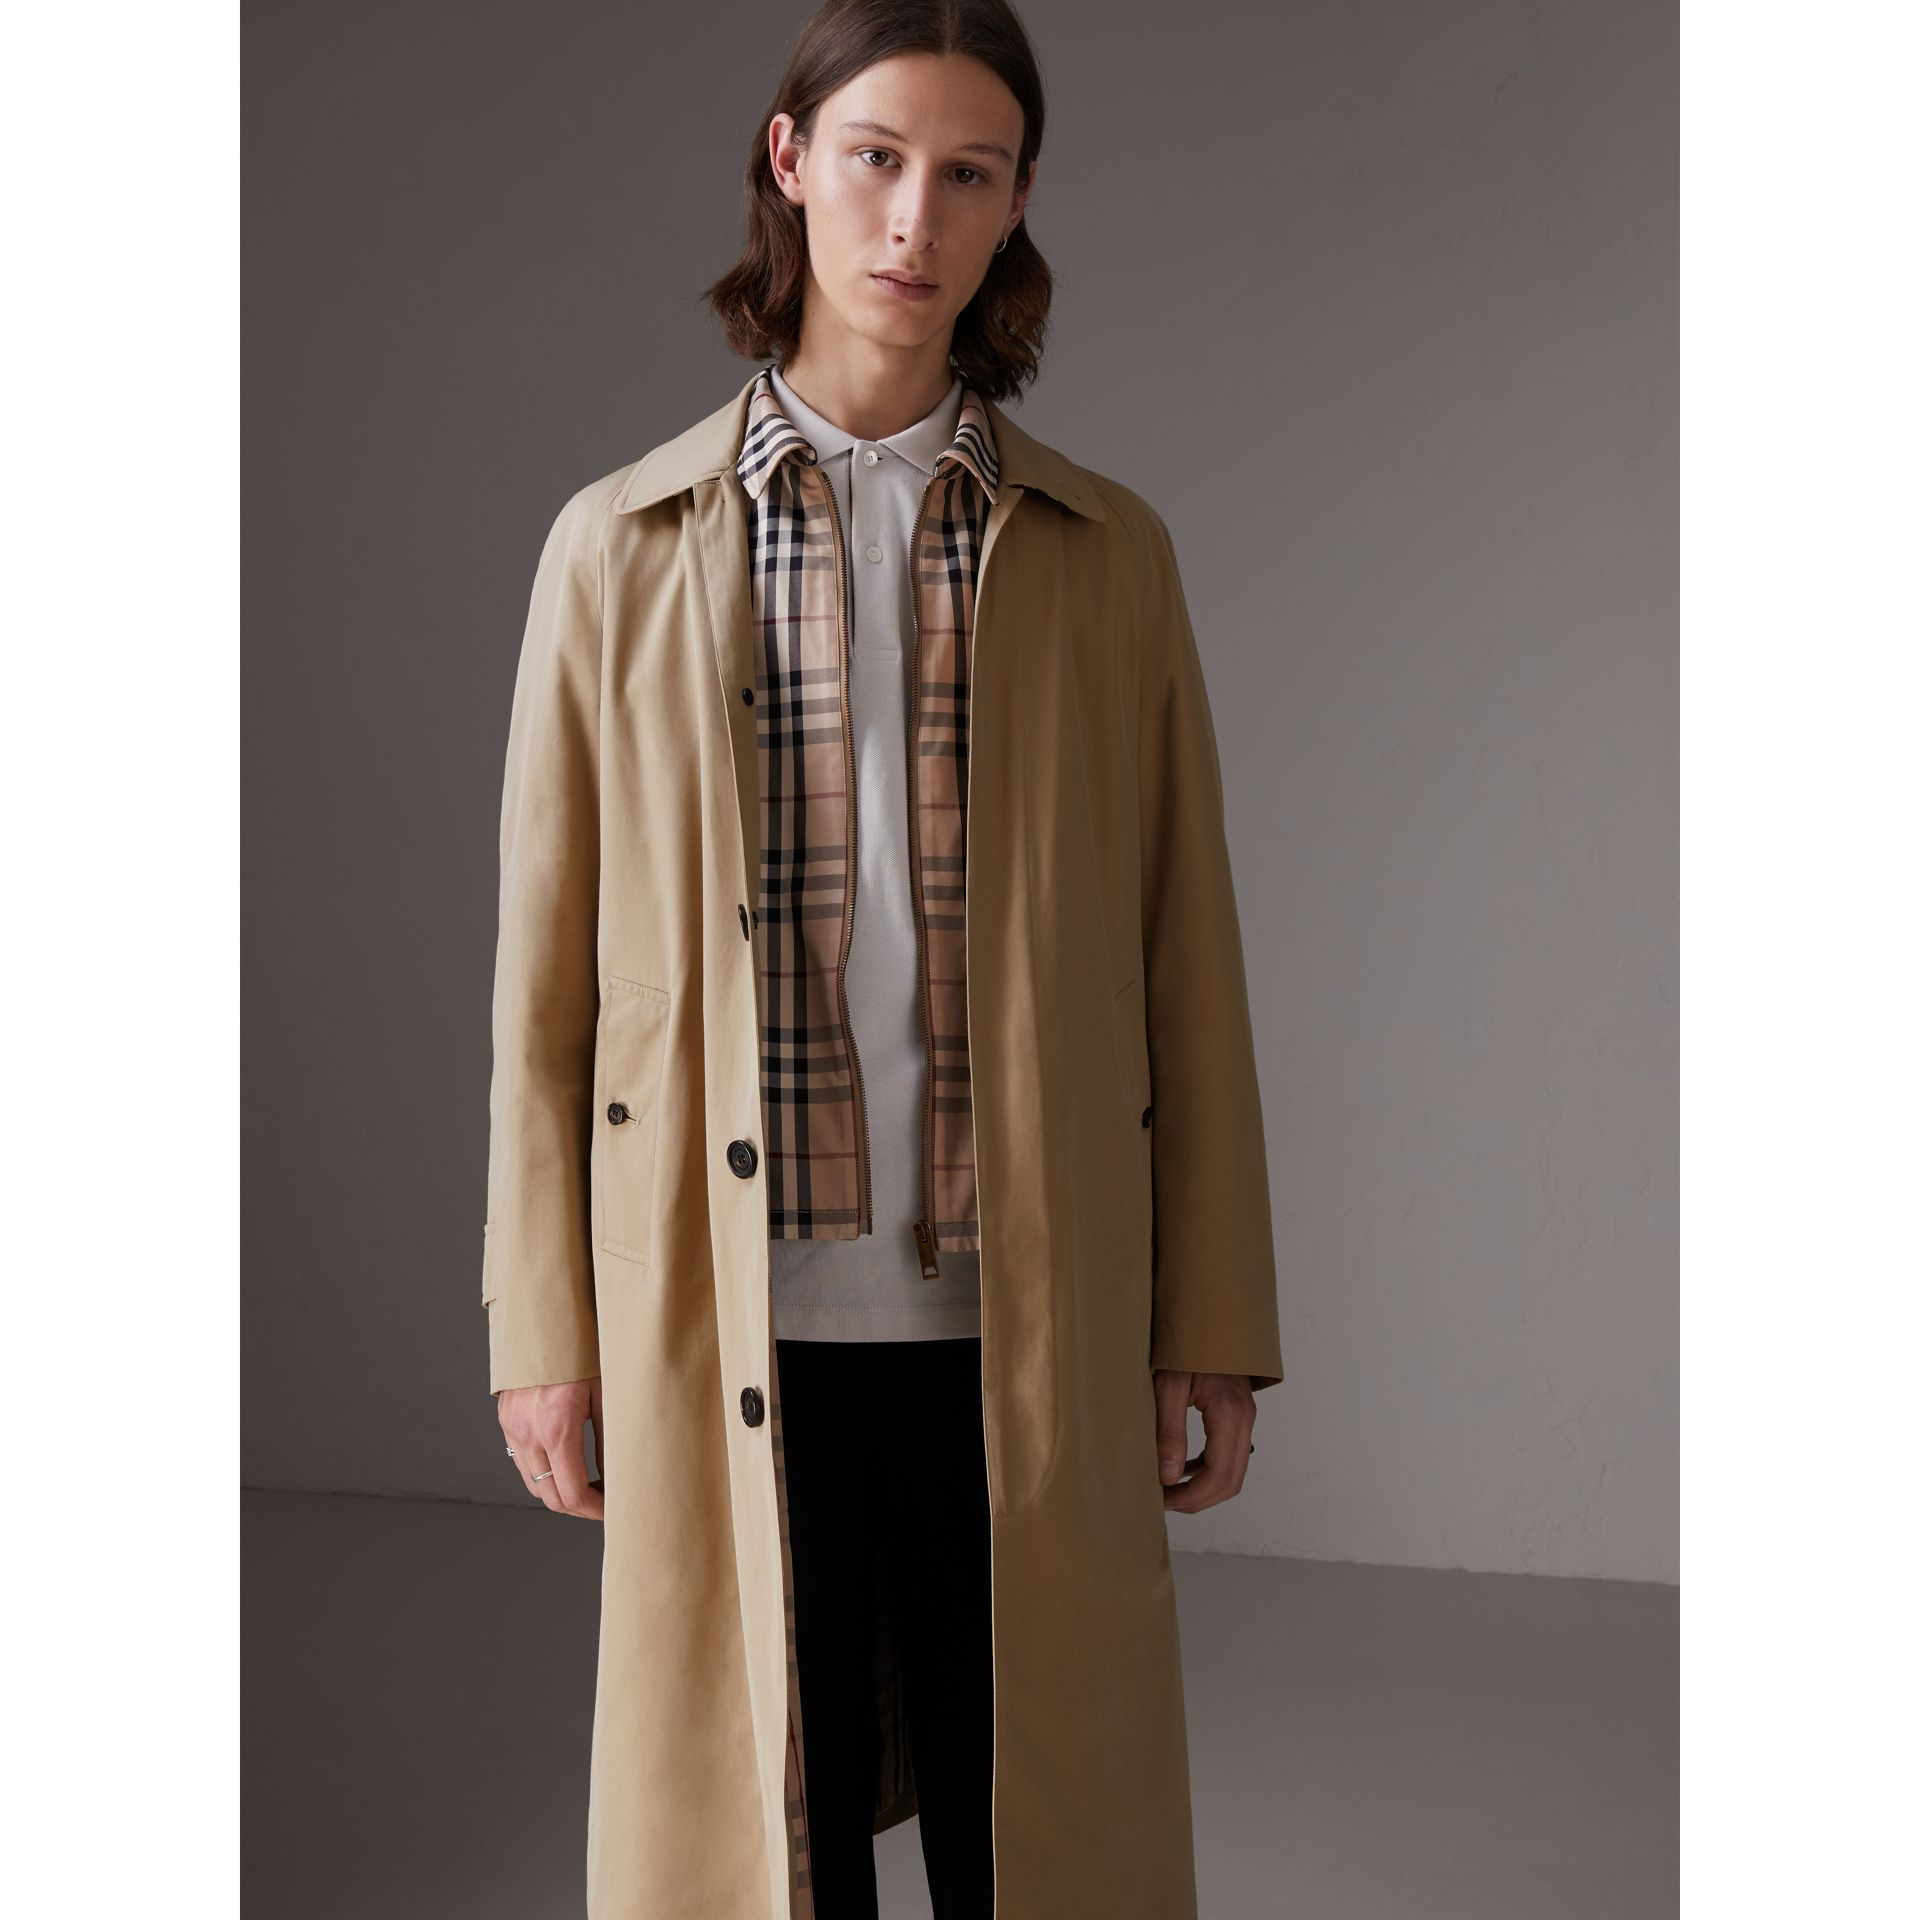 Gosha x Burberry Reconstructed Car Coat in Honey | Burberry United Kingdom - gallery image 2